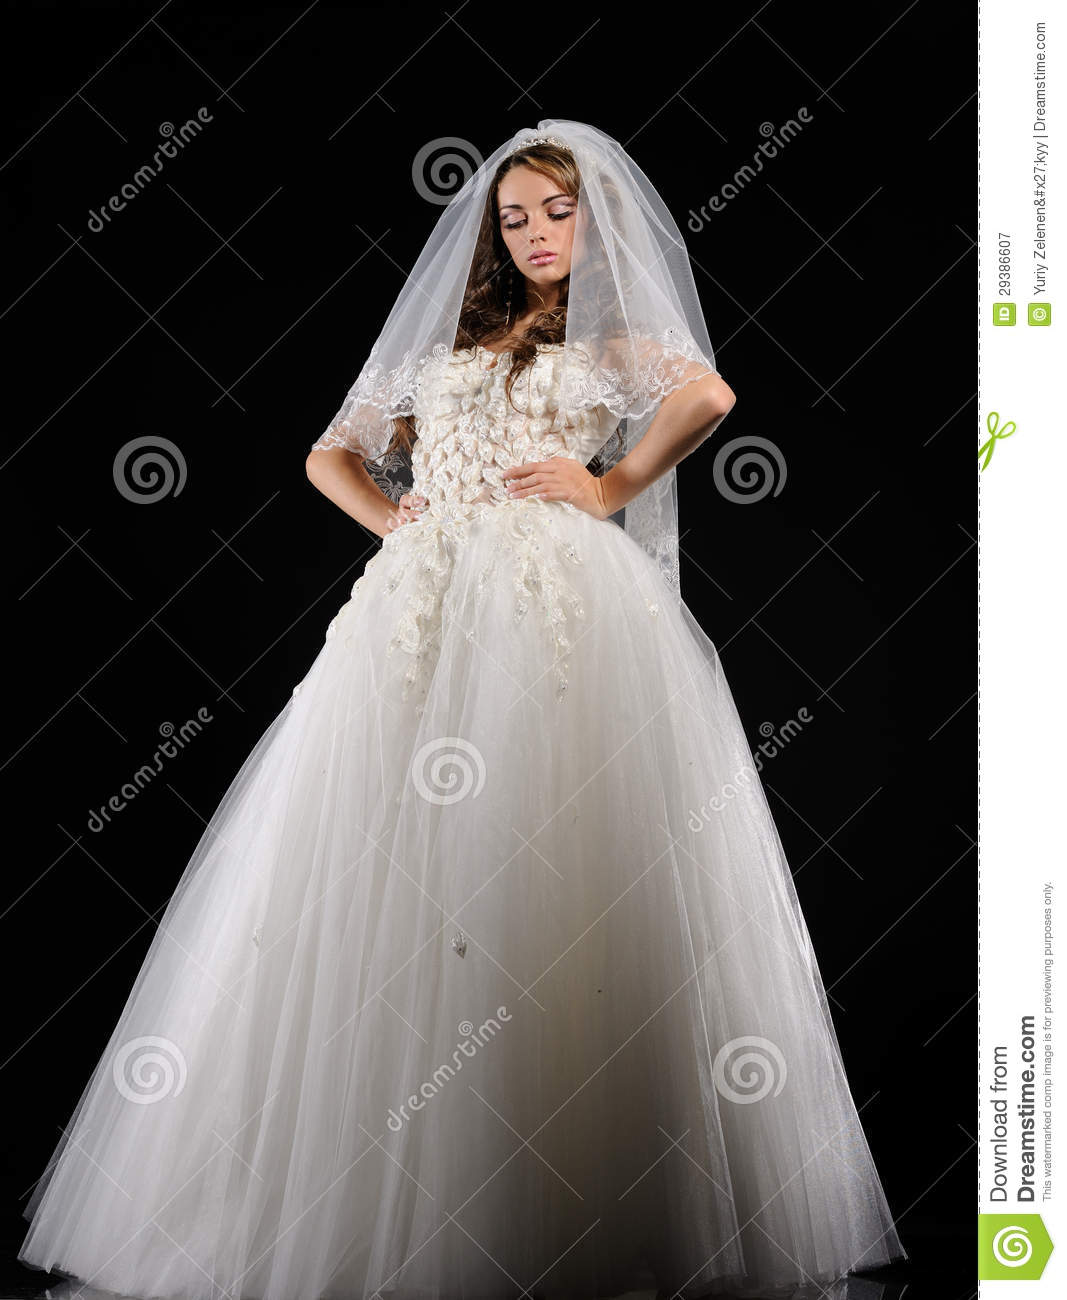 Young bride dressed in white wedding dress royalty free for Wedding dresses for young brides